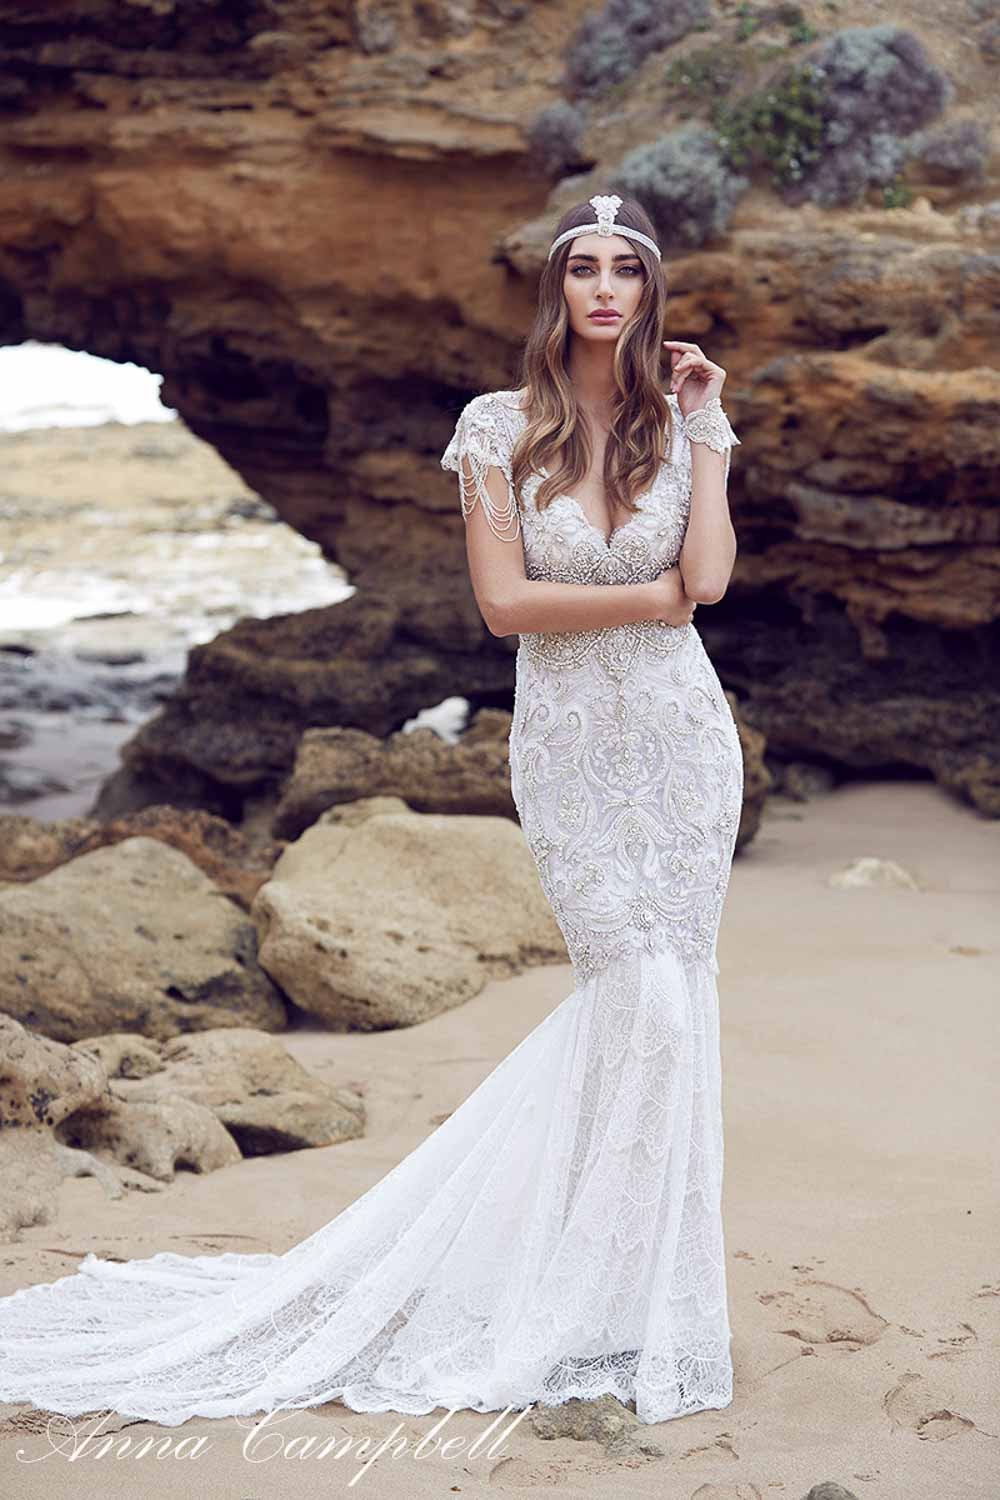 Anna Campbell Spirit Collection Wedding Dress 13